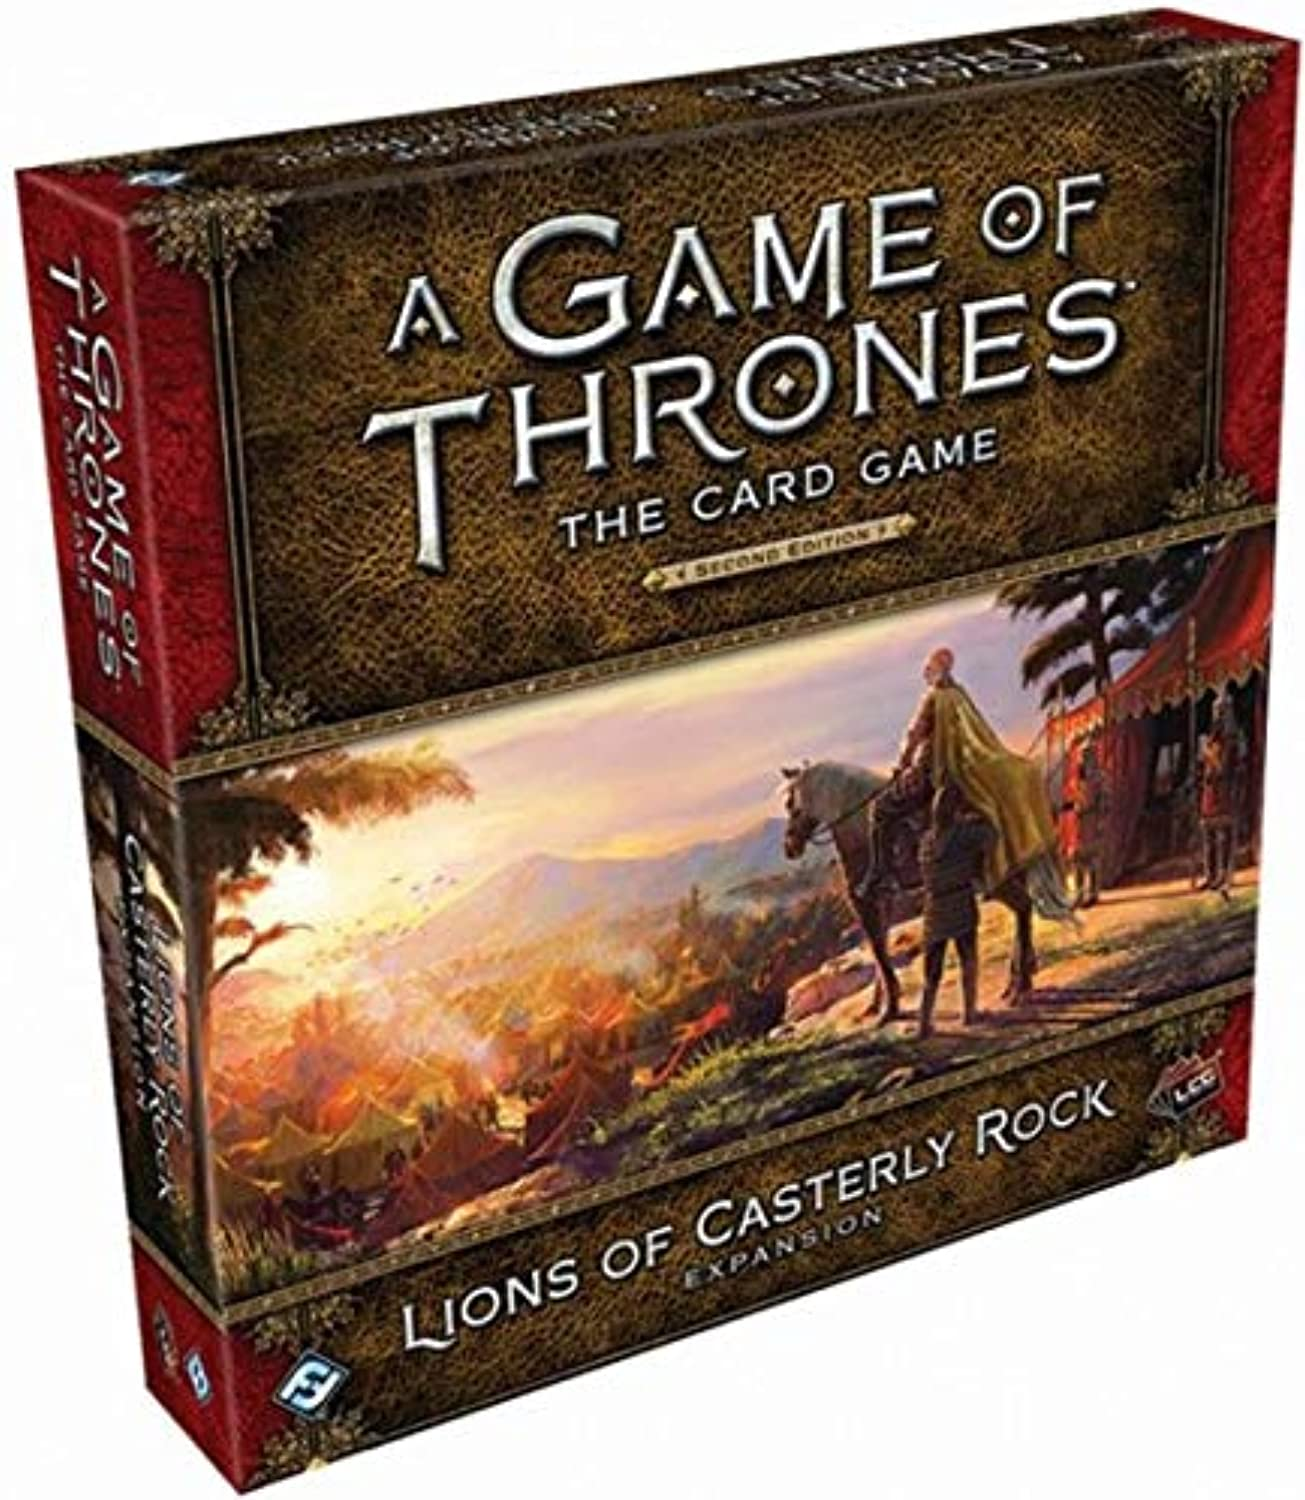 AGOT  The autod gioco 2nd Ed.  Lions of Casterly Rock (Exp.) (engl